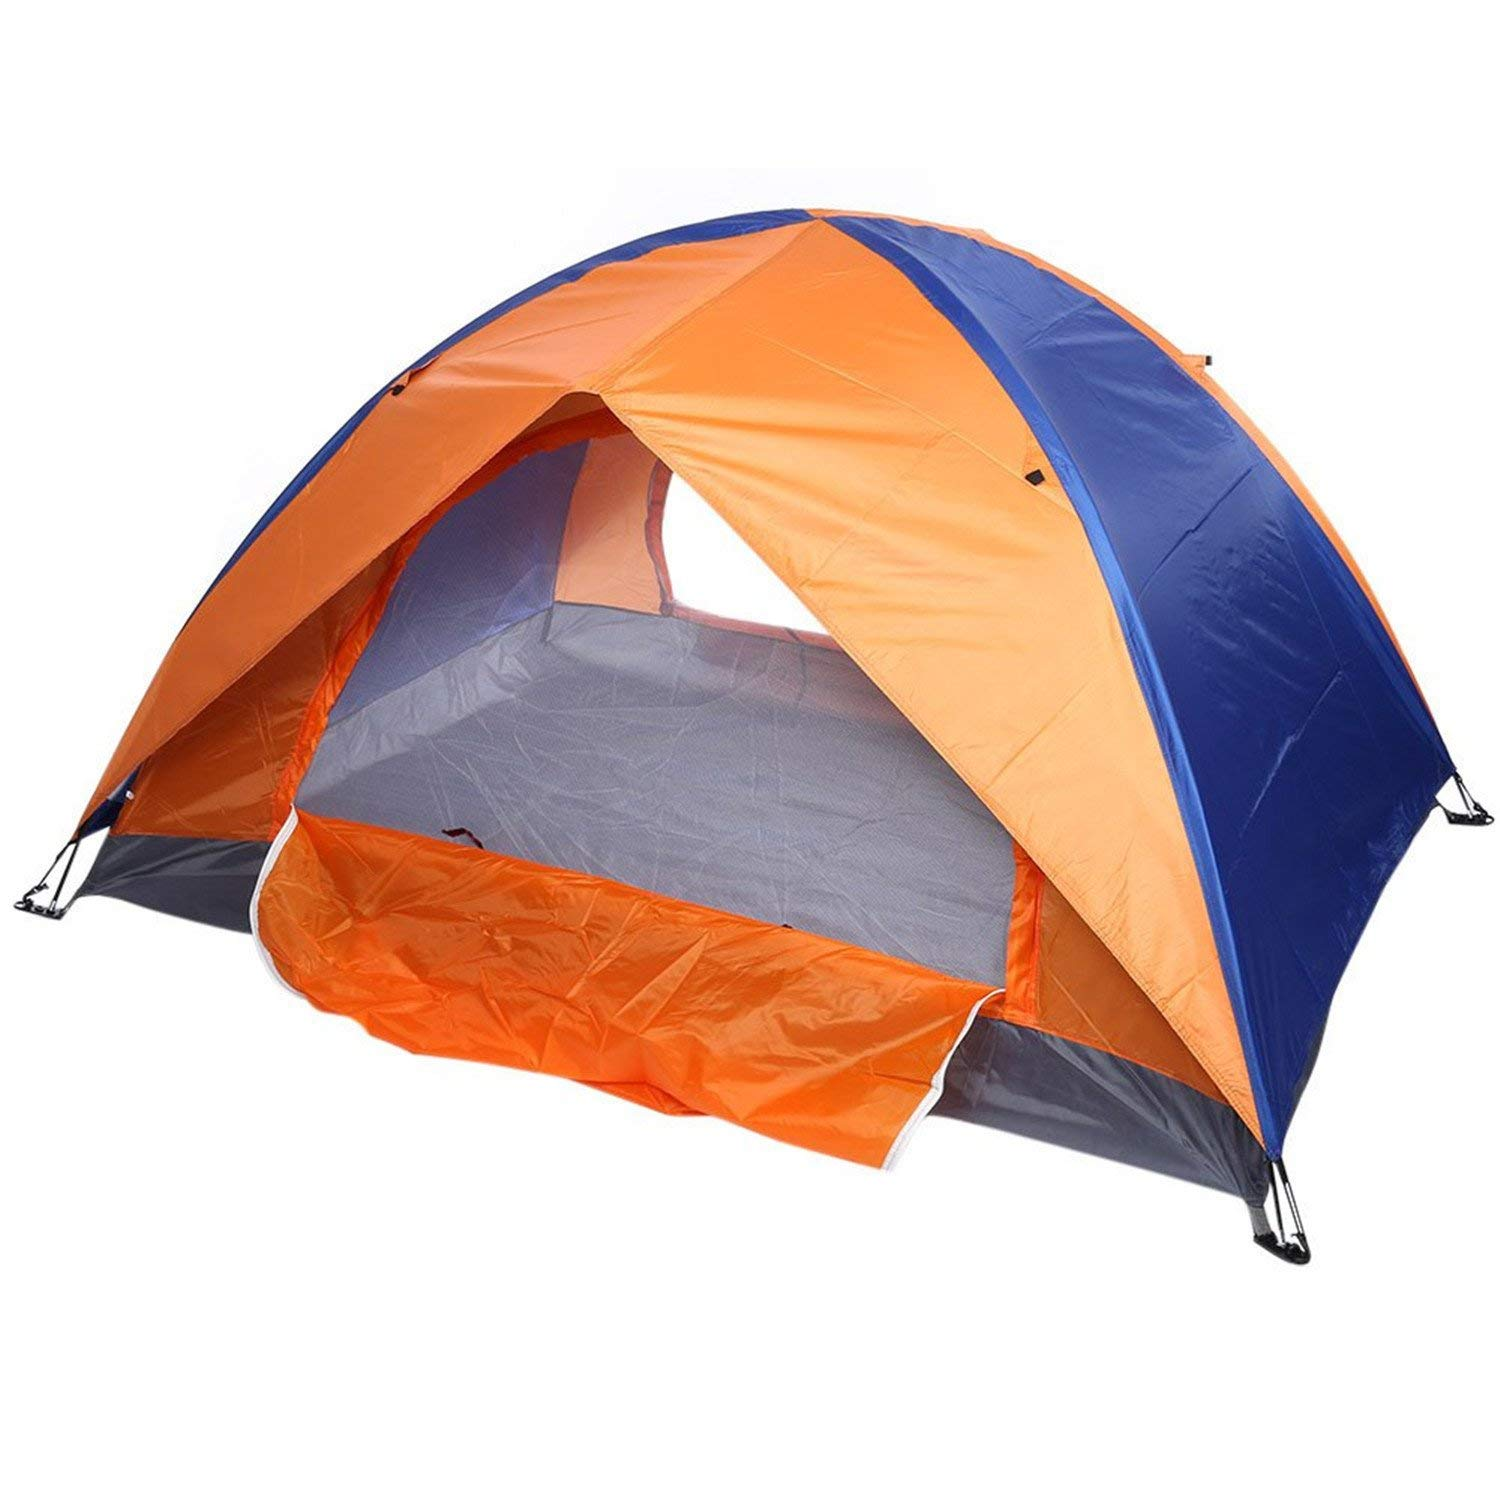 Nutsima Water Resistant Camping Tent Tabernacle Sleeping Equipment For Outdoor Exercise